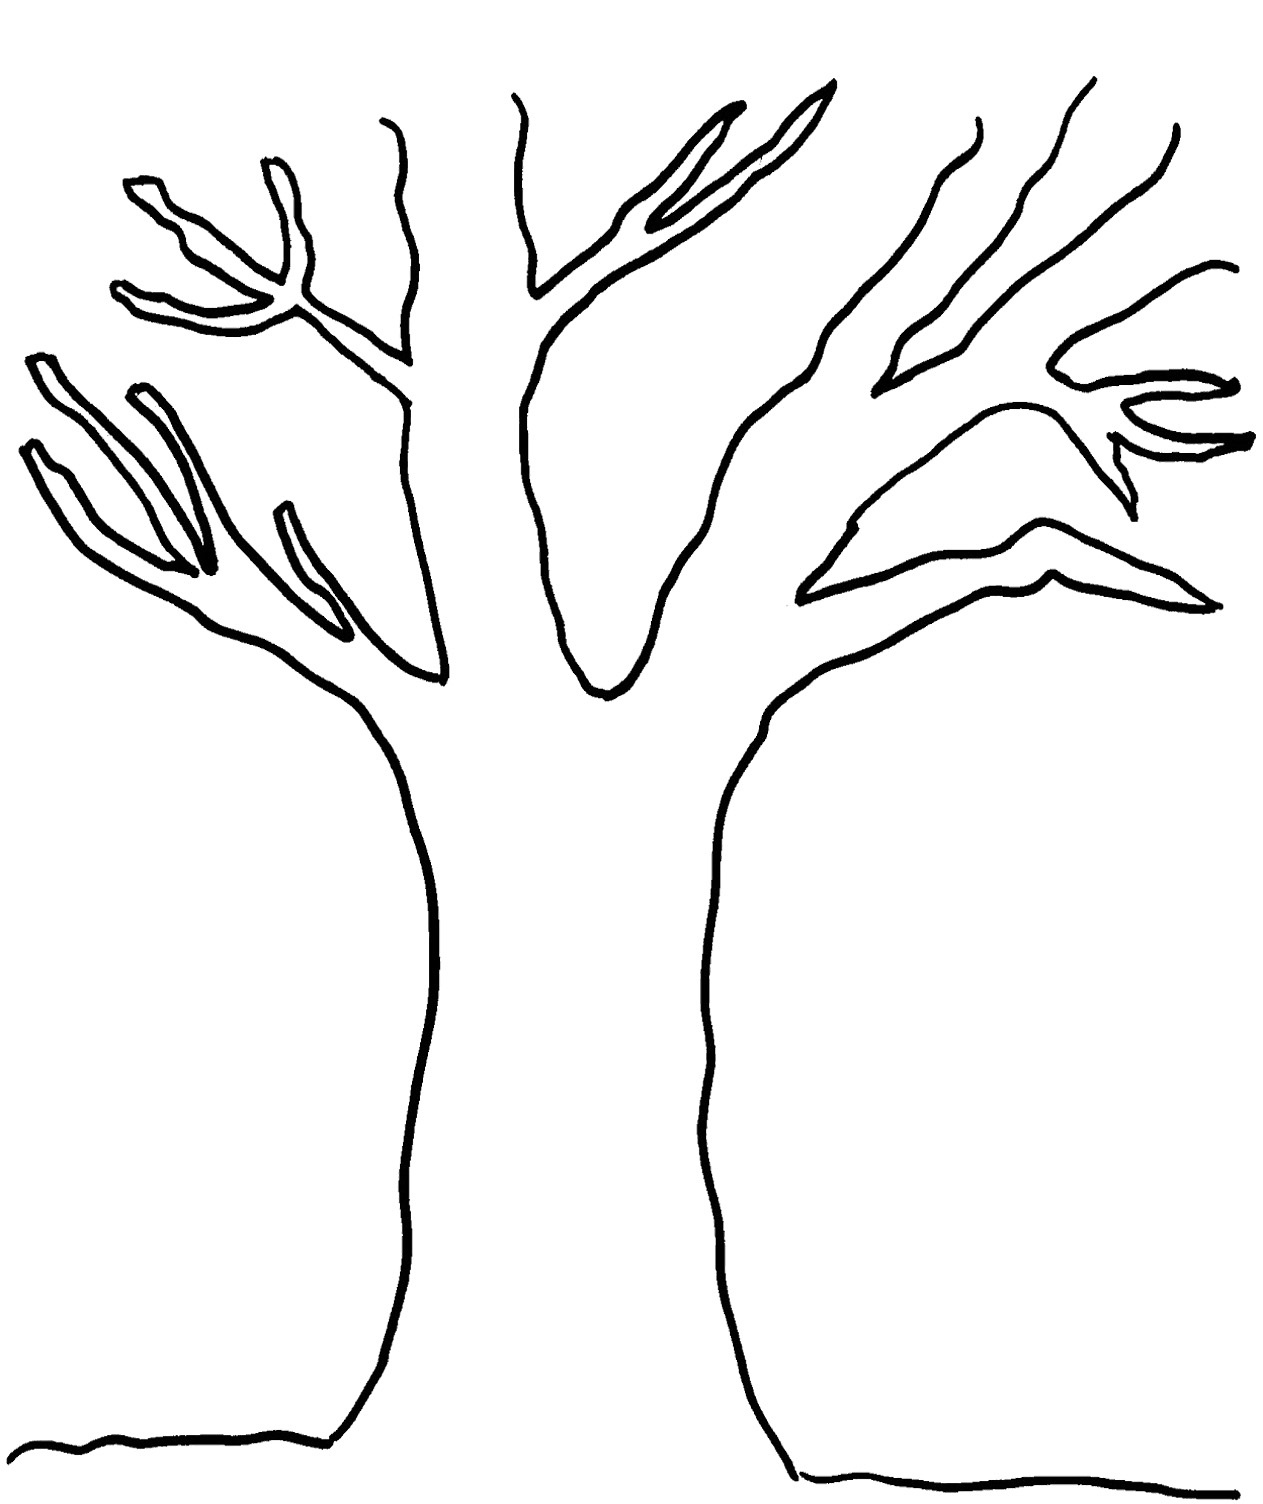 Free Printable Pictures Of Trees, Download Free Clip Art, Free Clip - Free Printable Tree Template